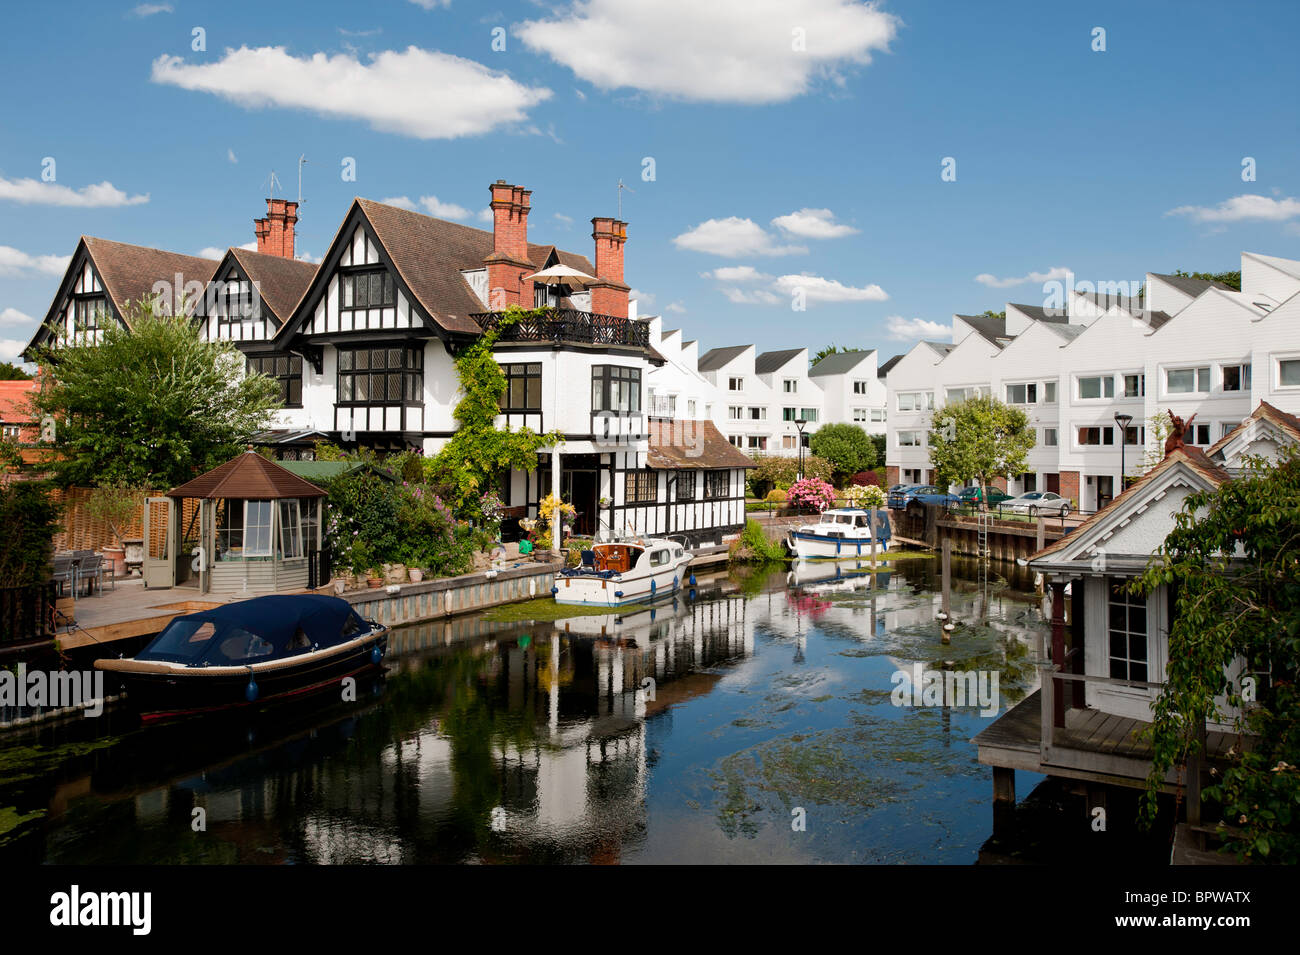 Property overlooking water, Marlow historic town situated on the River Thames, Buckinghamshire, England, United - Stock Image